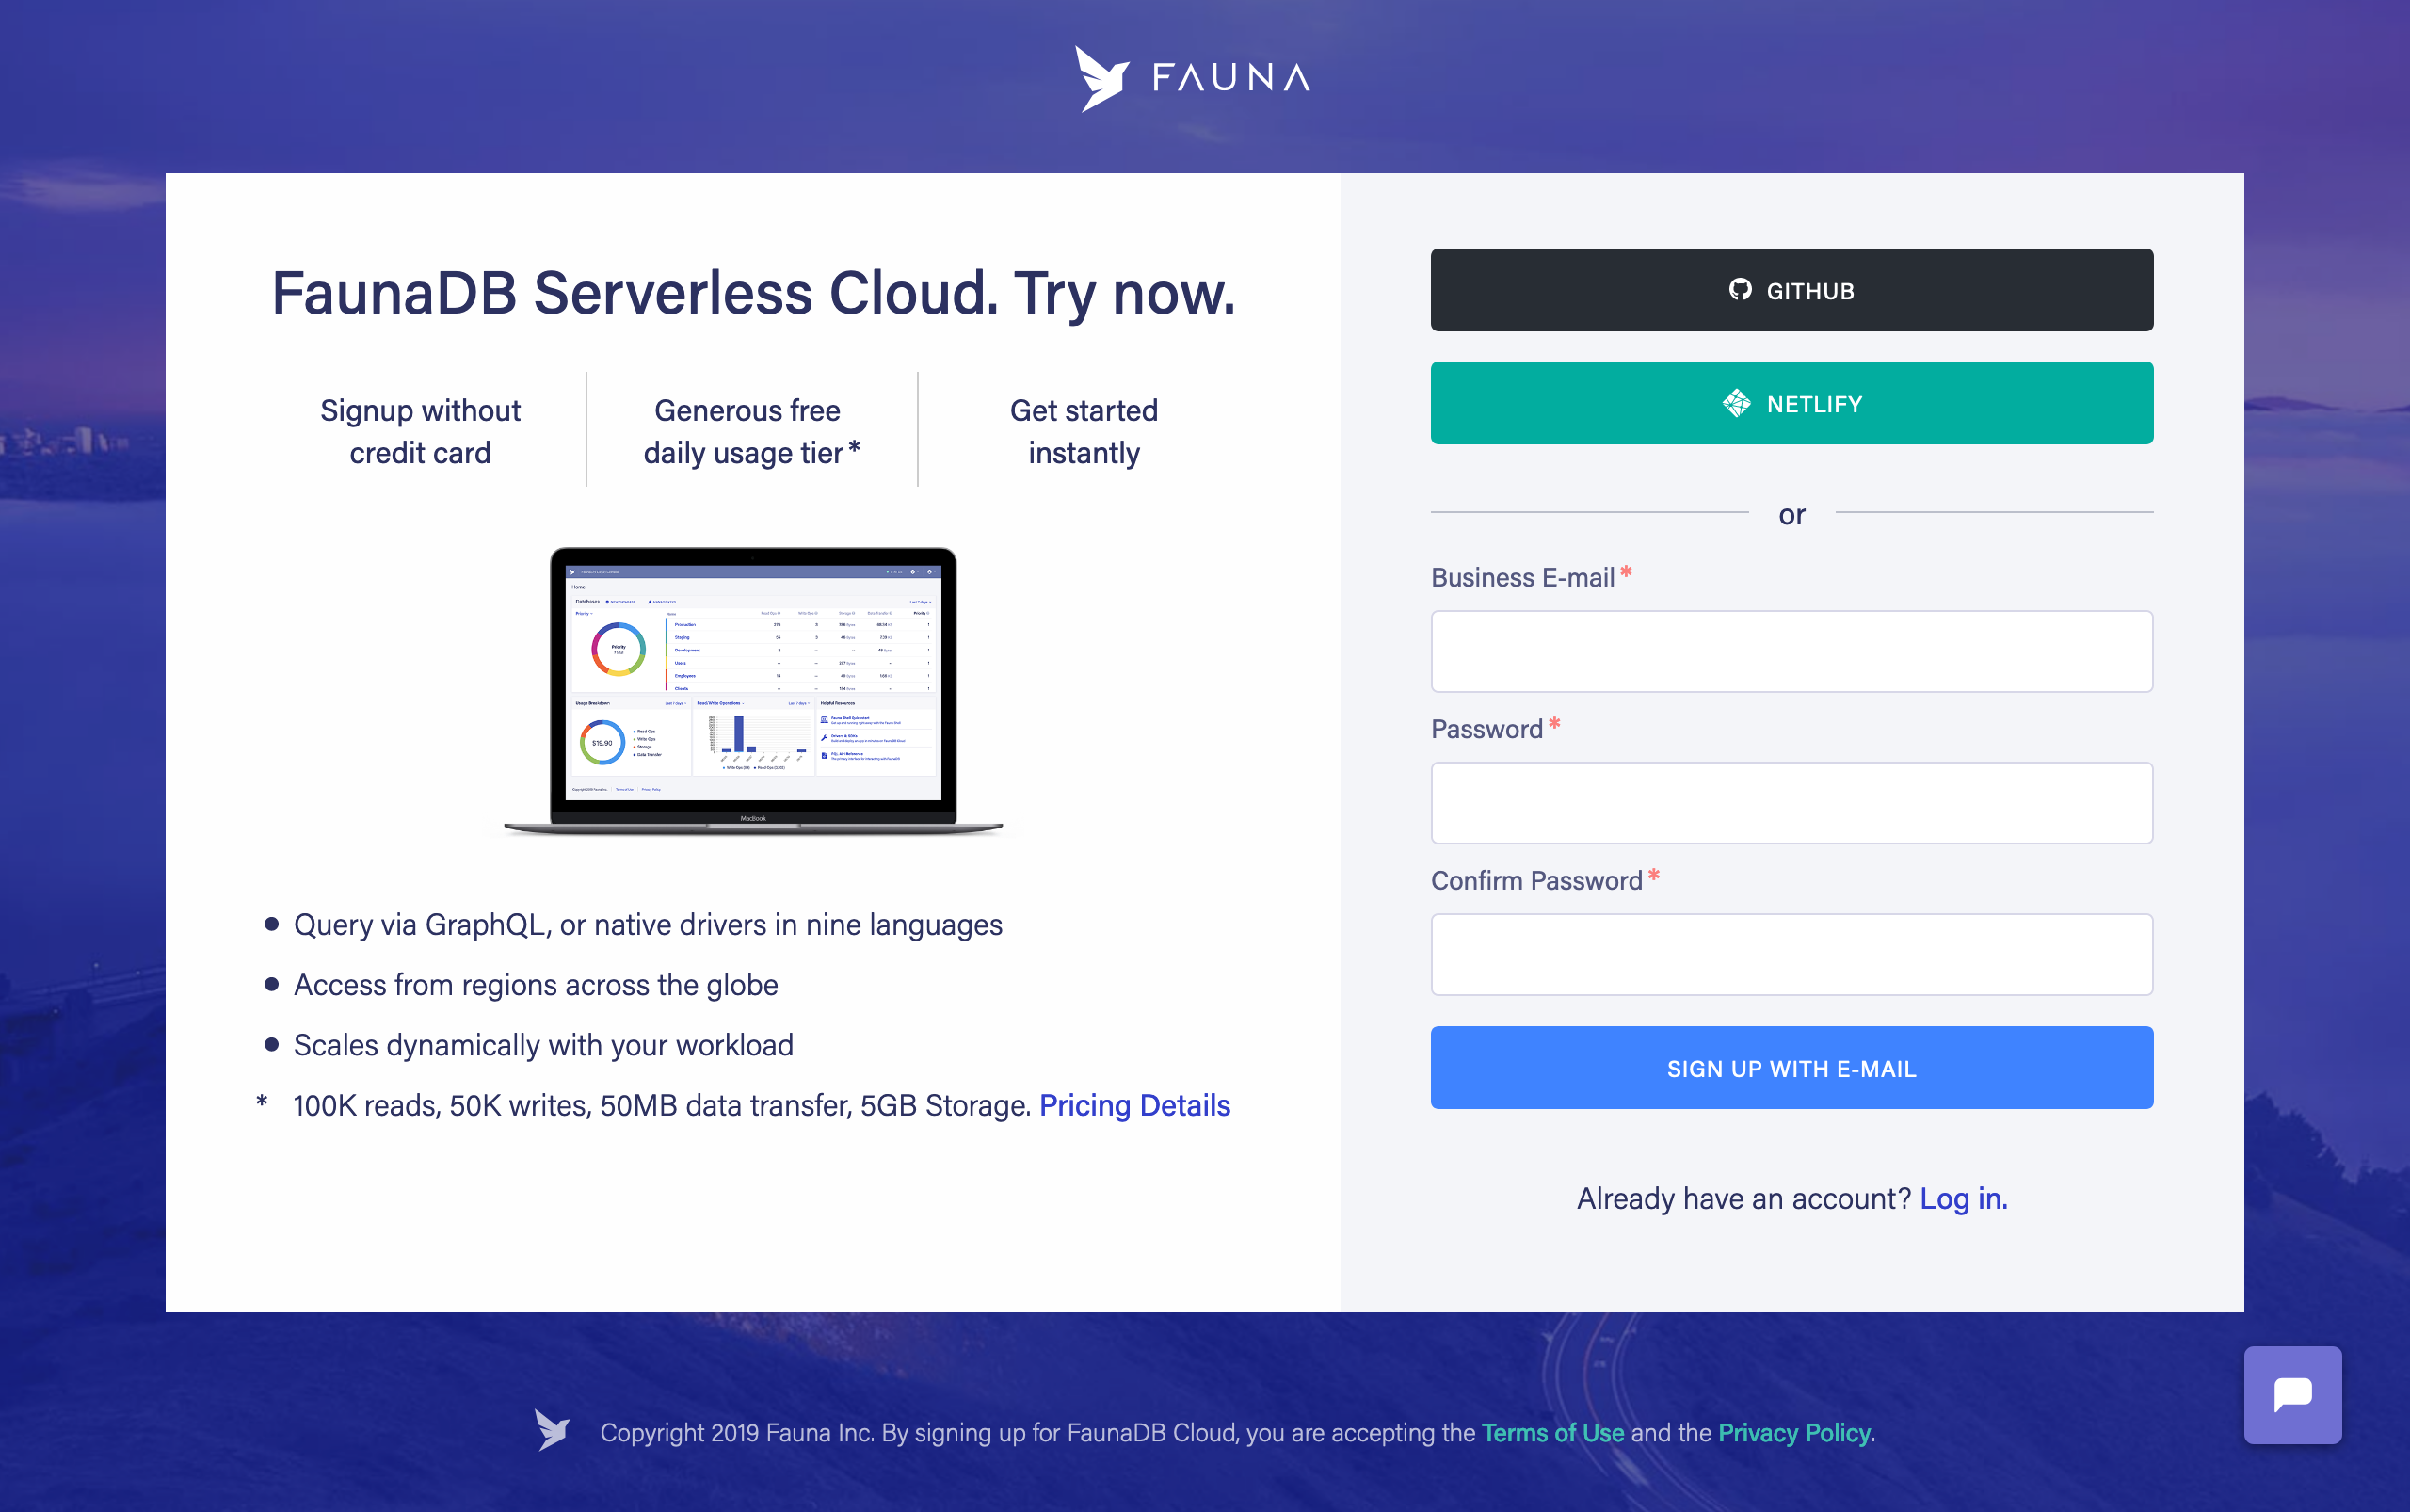 Sign up for FaunaDB